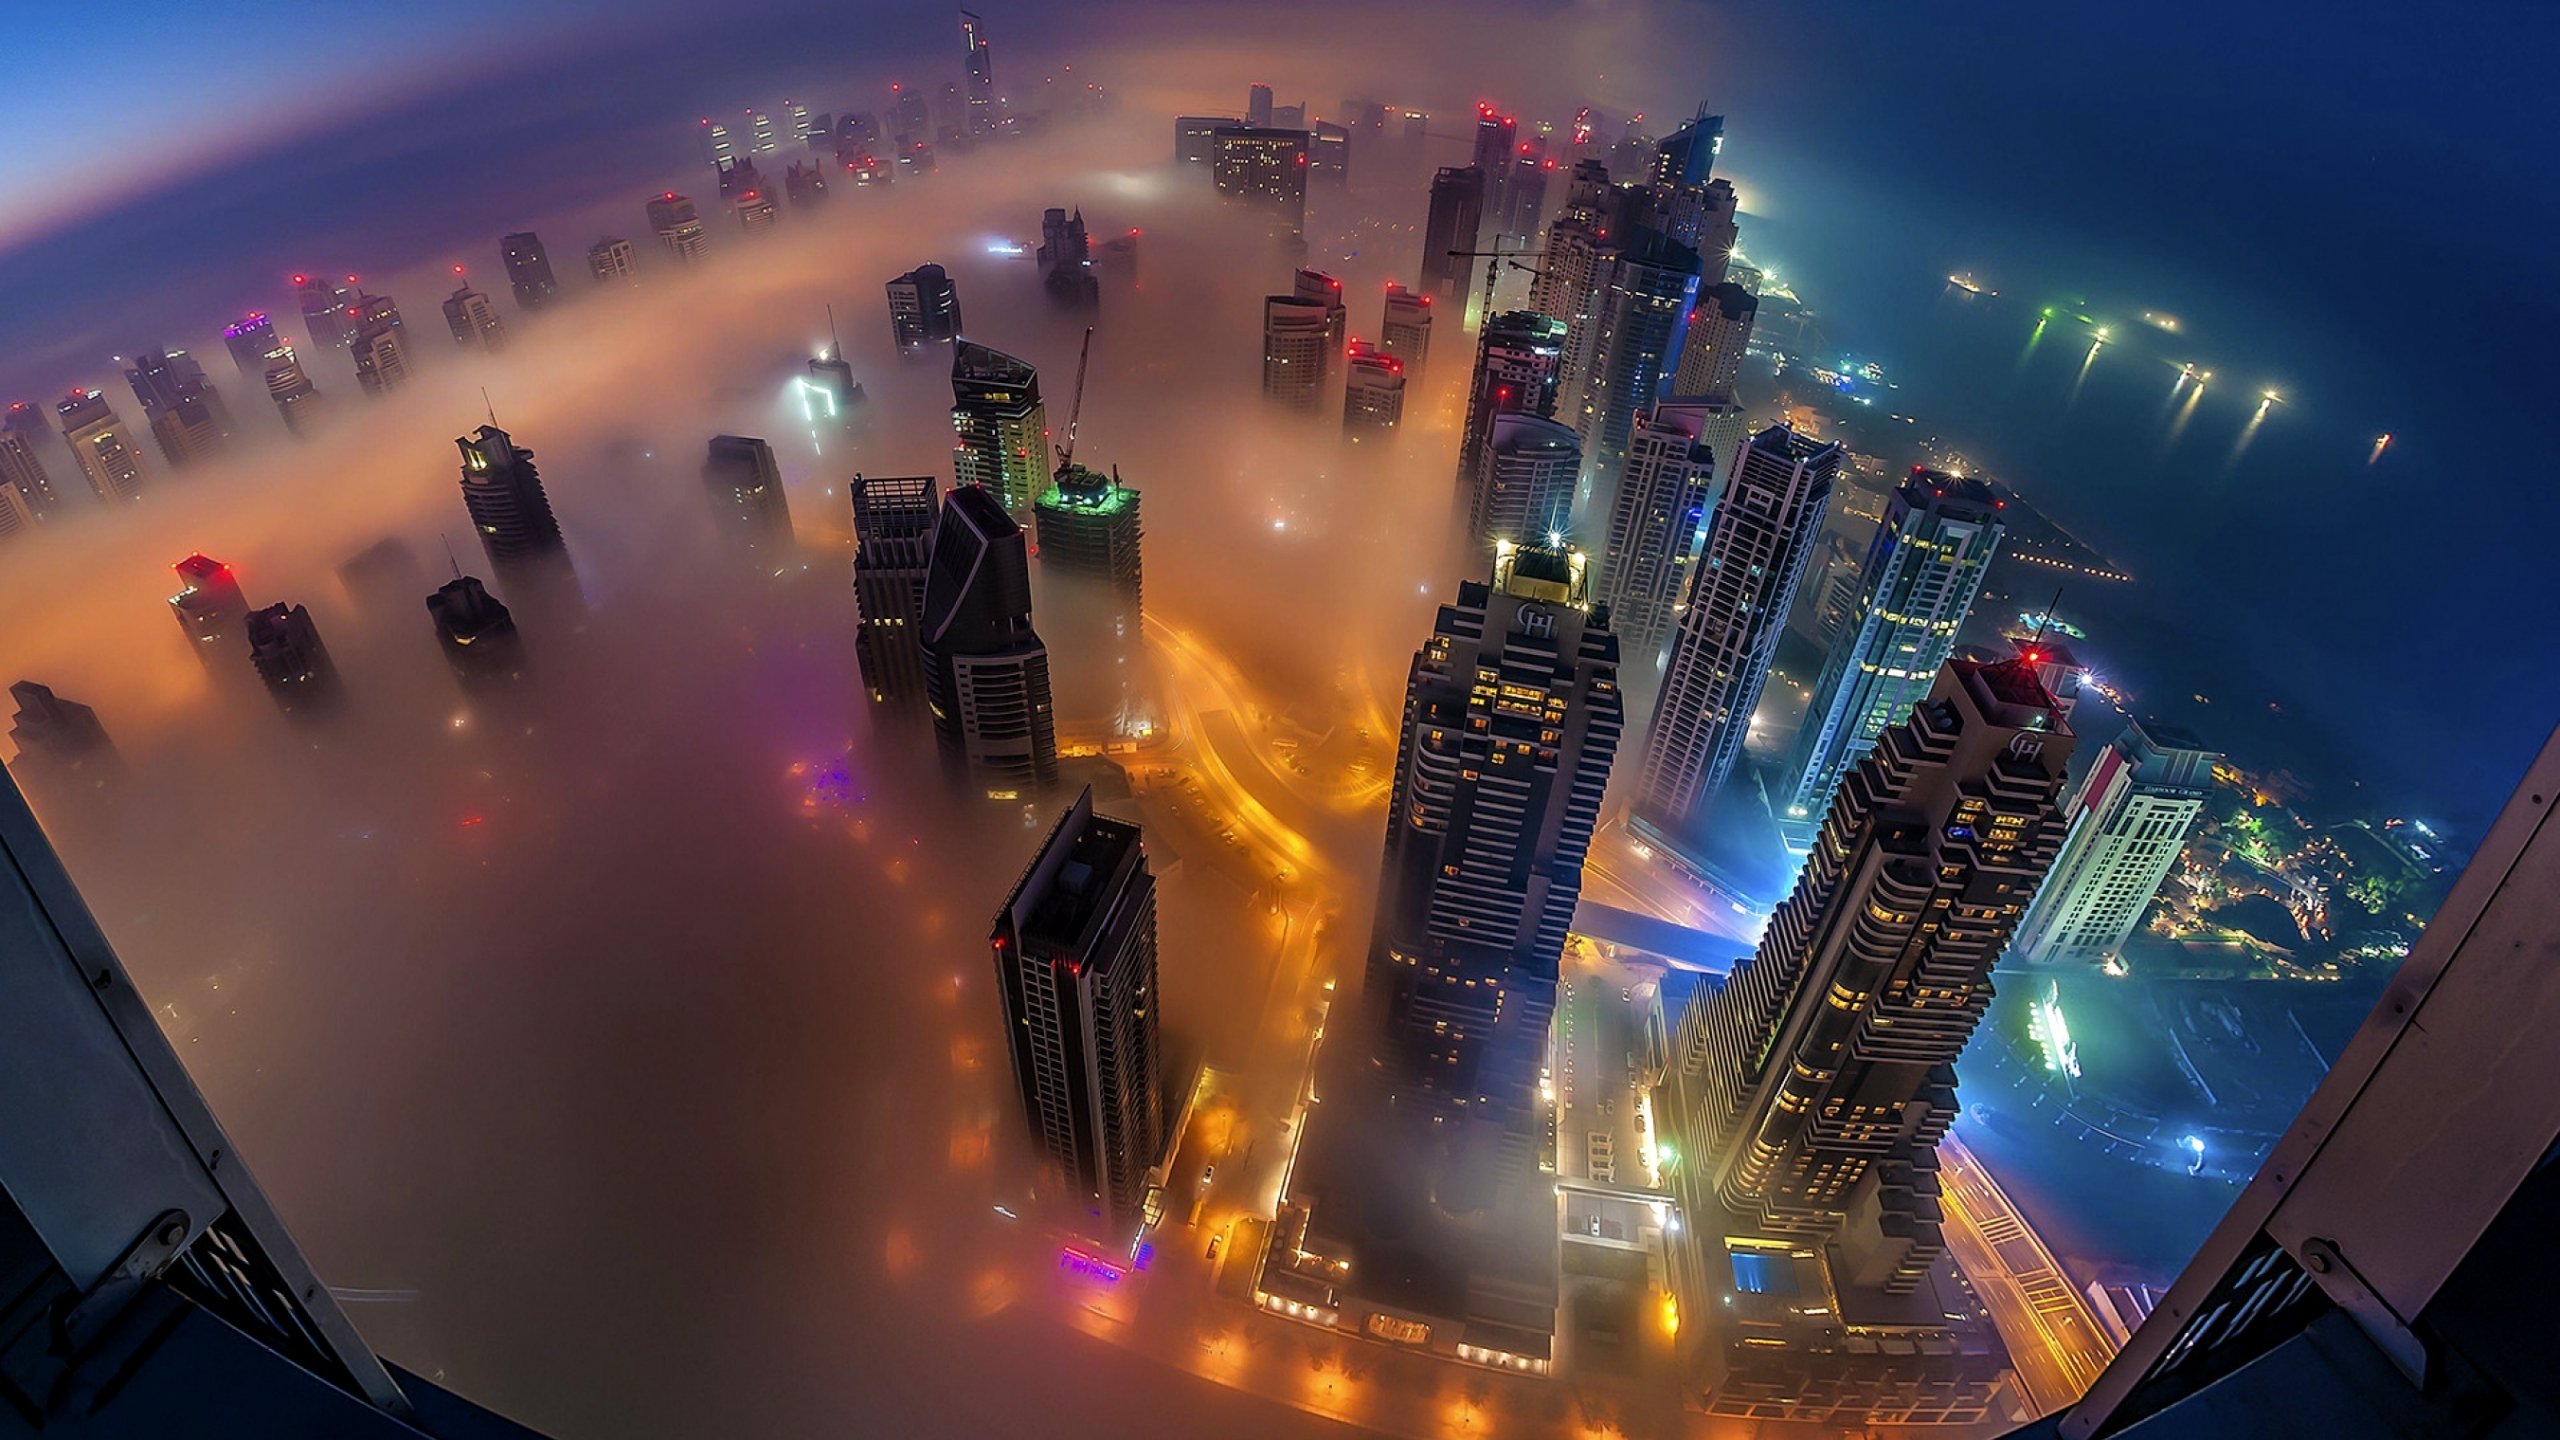 Foggy Night In The City Wallpaper Id3112